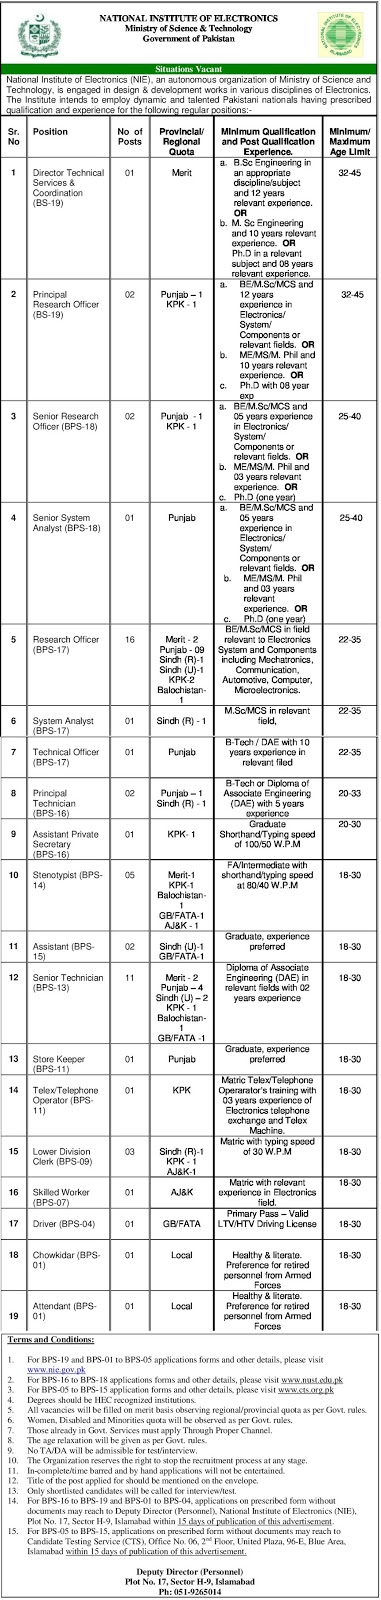 National Institute of Electronics (NIE), Government of Pakistan Latest jobs 2019